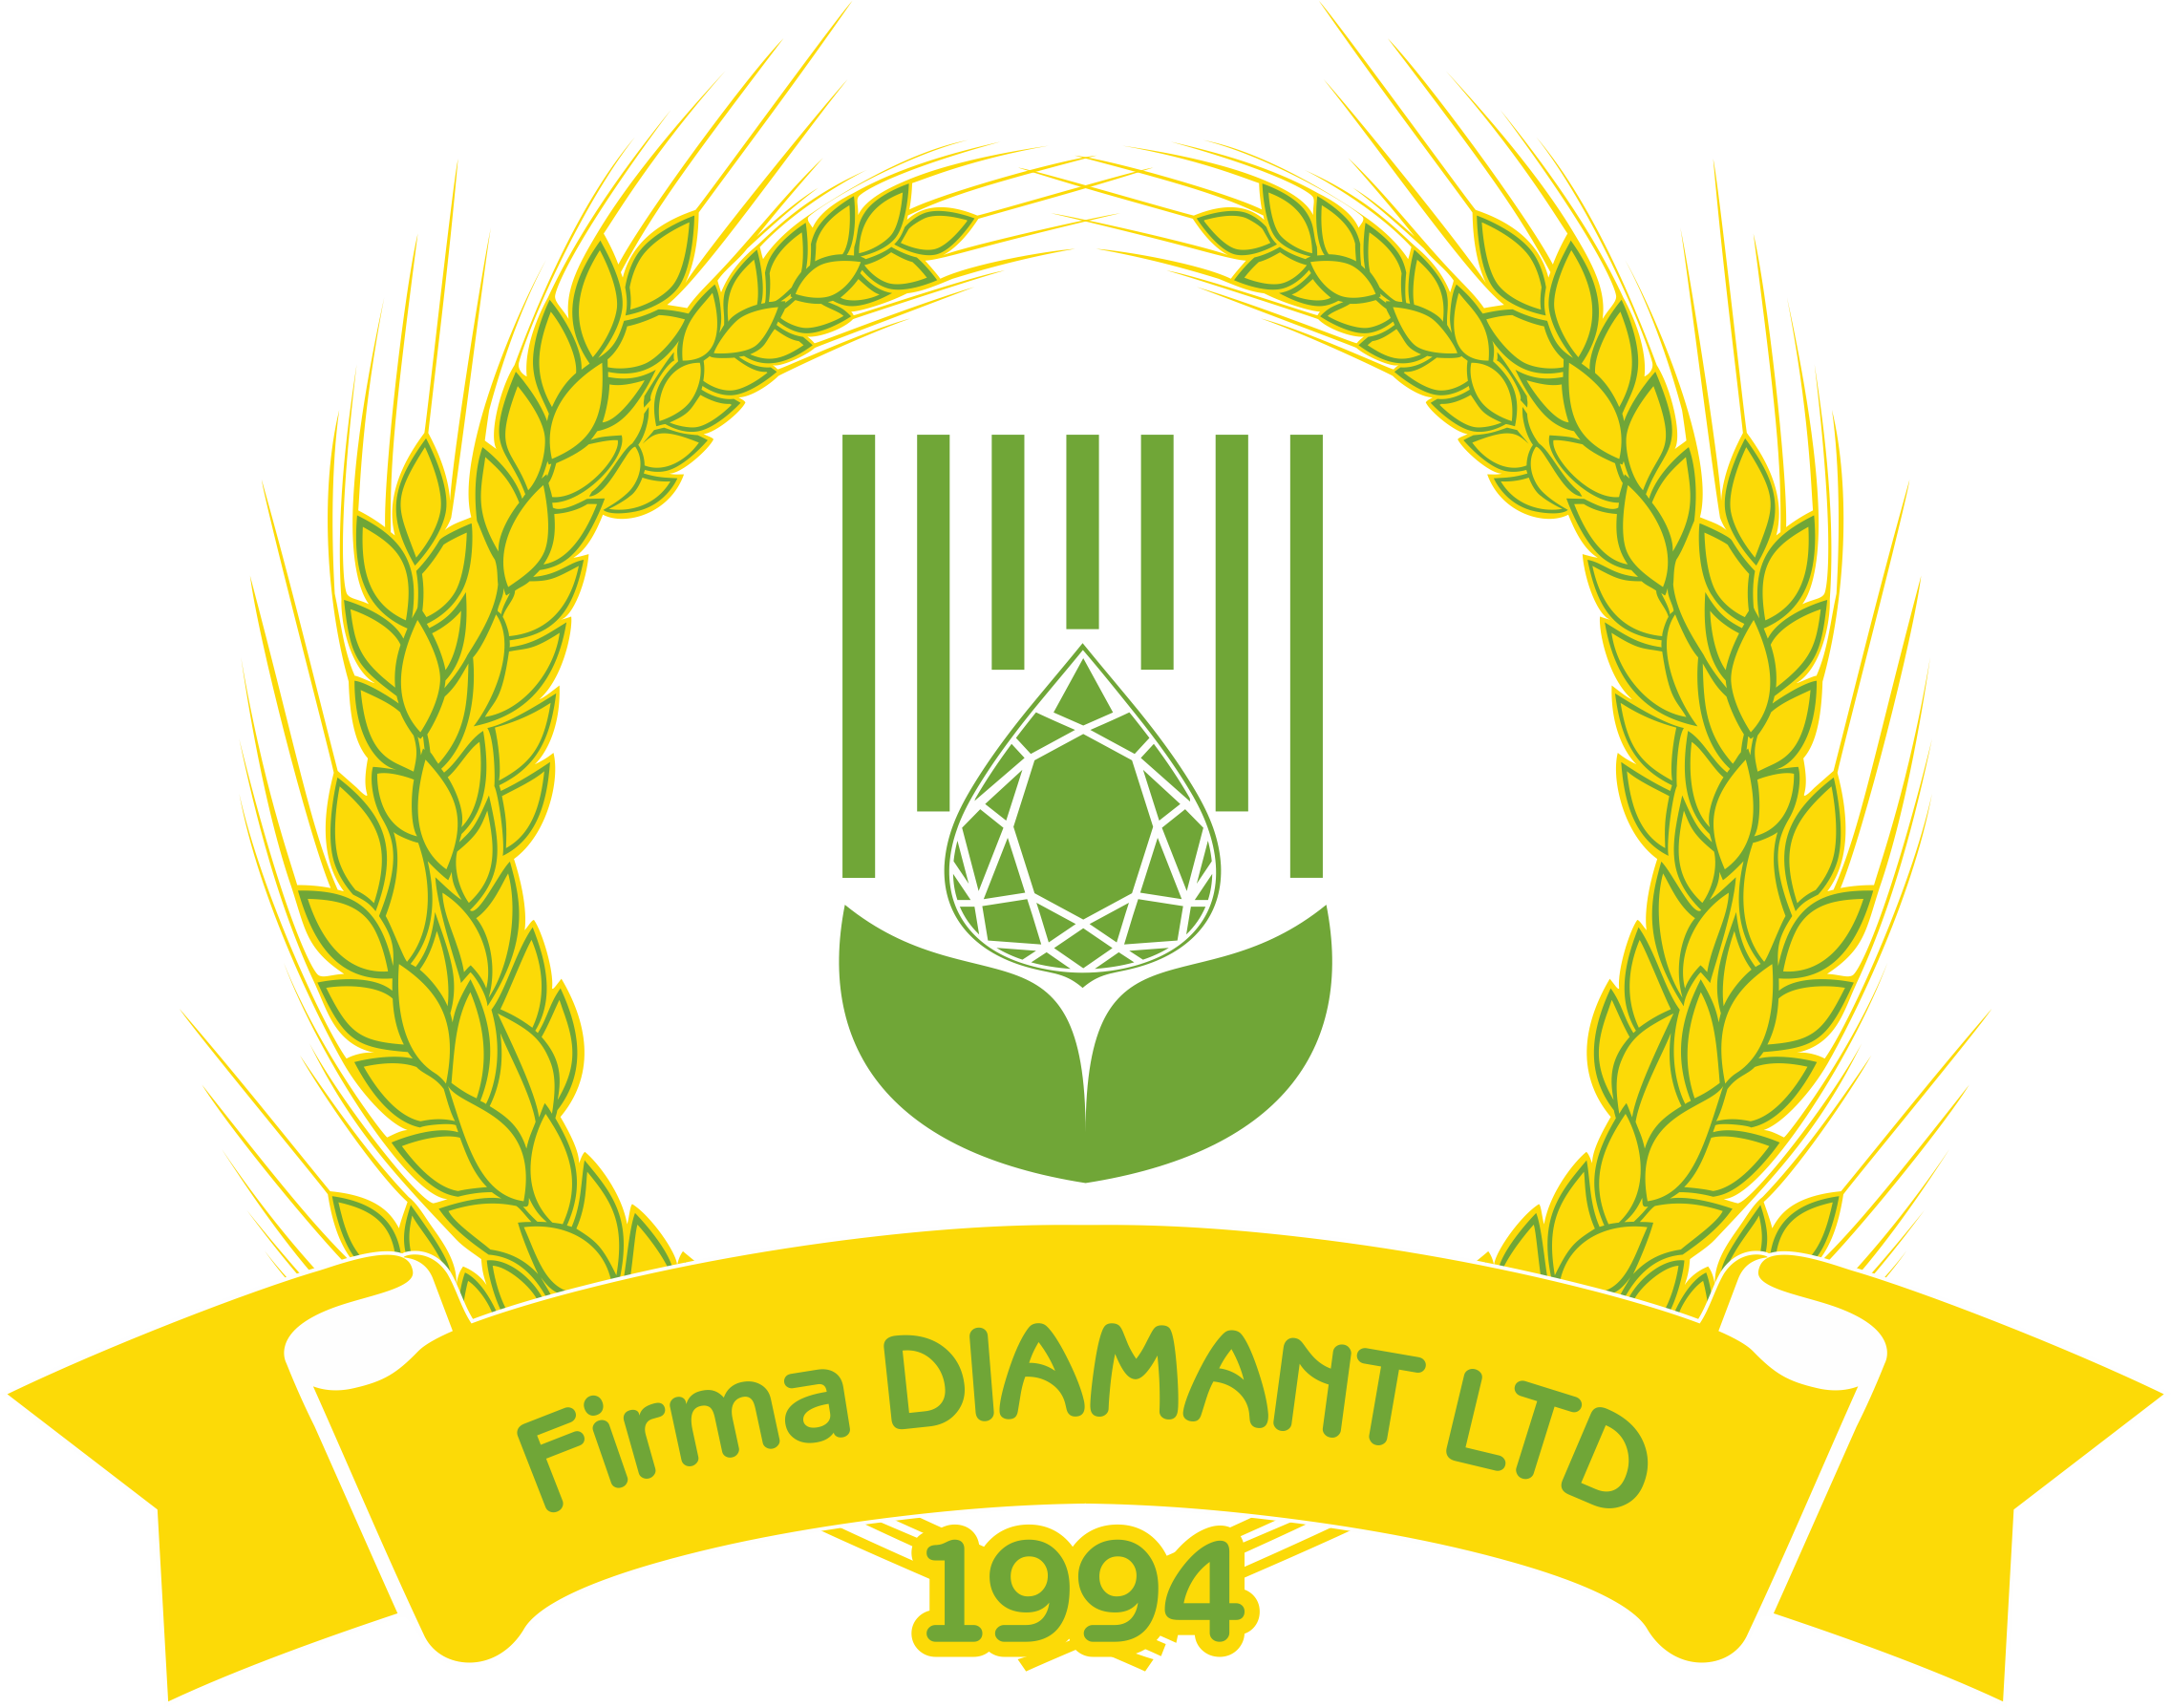 DiamantLTD logo